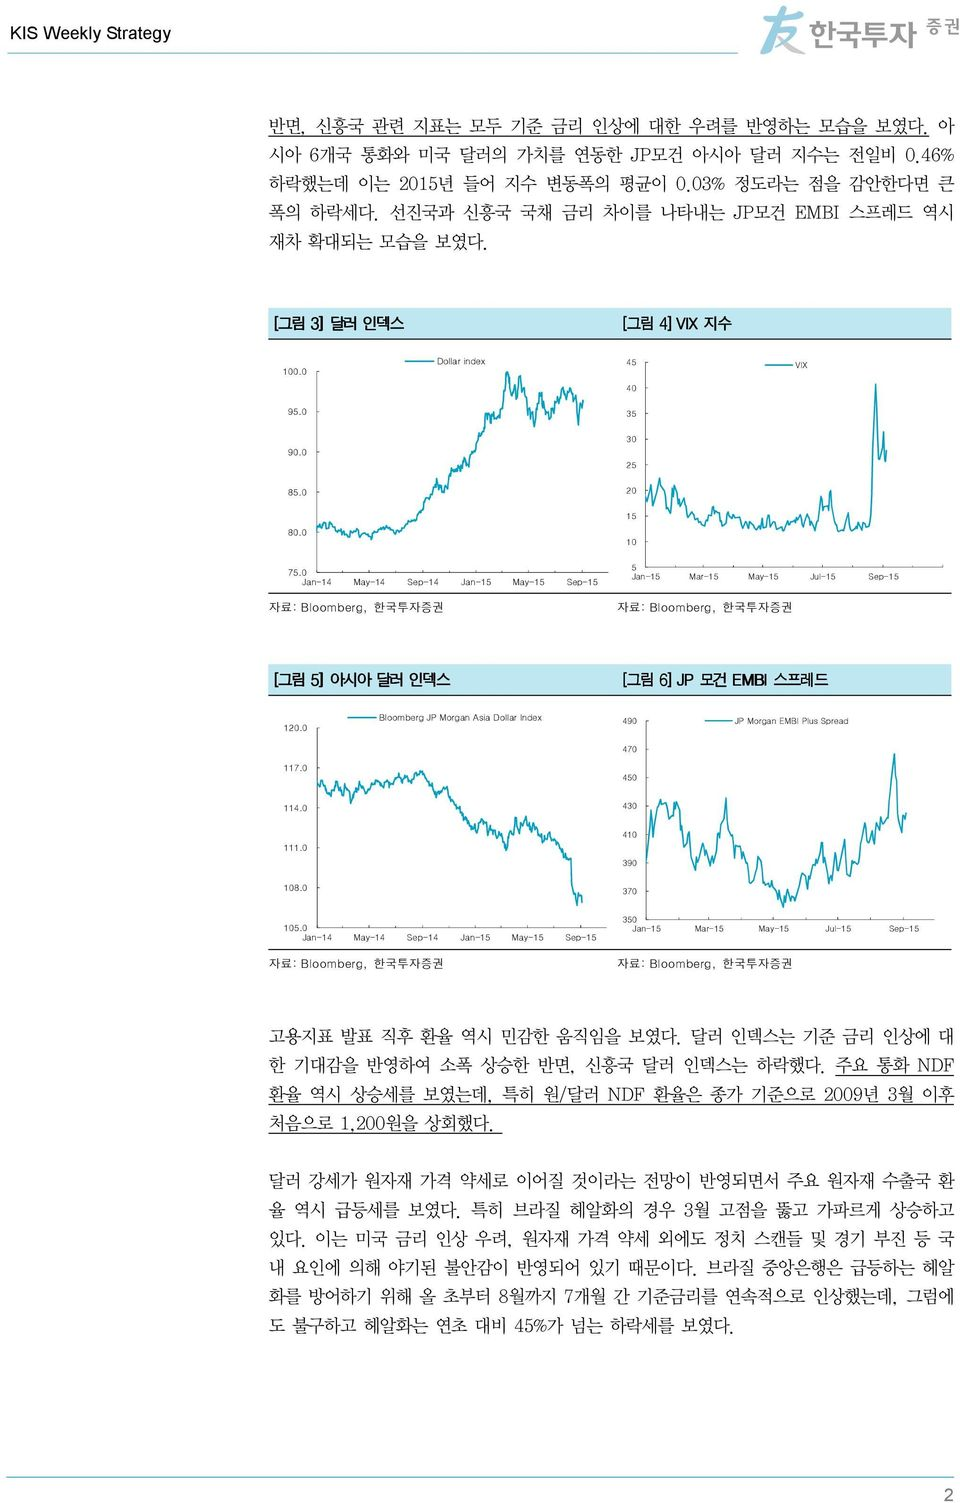 0 5 Jan-15 Mar-15 May-15 Jul-15 Sep-15 5] 아시아 달러 인덱스 6] JP 모건 EMBI 스프레드 120.0 Bloomberg JP Morgan Asia Dollar Index 490 JP Morgan EMBI Plus Spread 470 117.0 450 114.0 430 410 111.0 390 108.0 370 105.